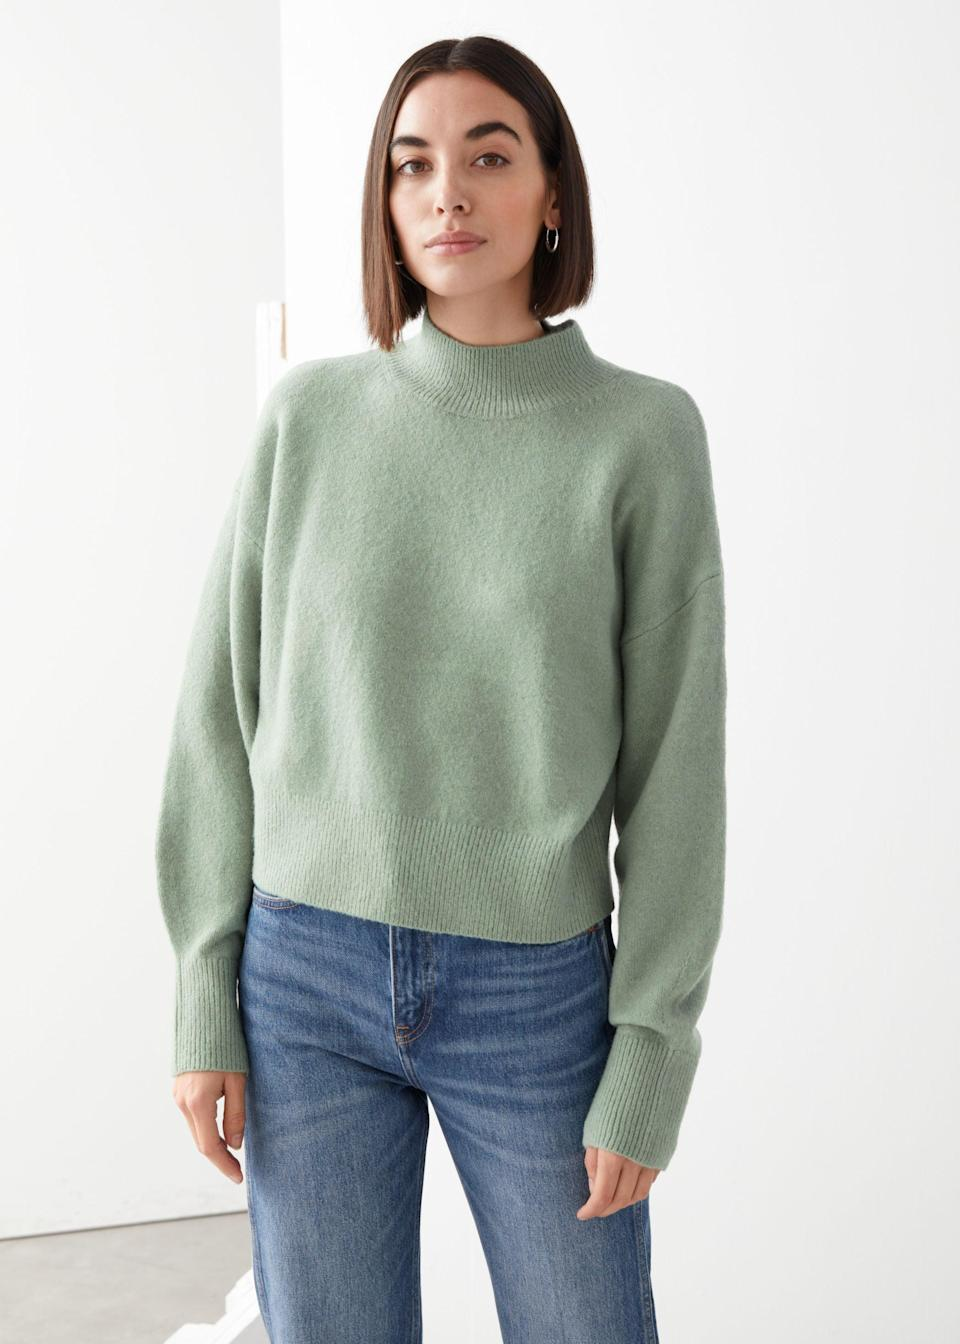 "<br><br><strong>& Other Stories</strong> Mock Neck Sweater, $, available at <a href=""https://go.skimresources.com/?id=30283X879131&url=https%3A%2F%2Fwww.stories.com%2Fen_usd%2Fclothing%2Fknitwear%2Fsweaters%2Fproduct.mock-neck-sweater-green.0657545048.html"" rel=""nofollow noopener"" target=""_blank"" data-ylk=""slk:& Other Stories"" class=""link rapid-noclick-resp"">& Other Stories</a>"